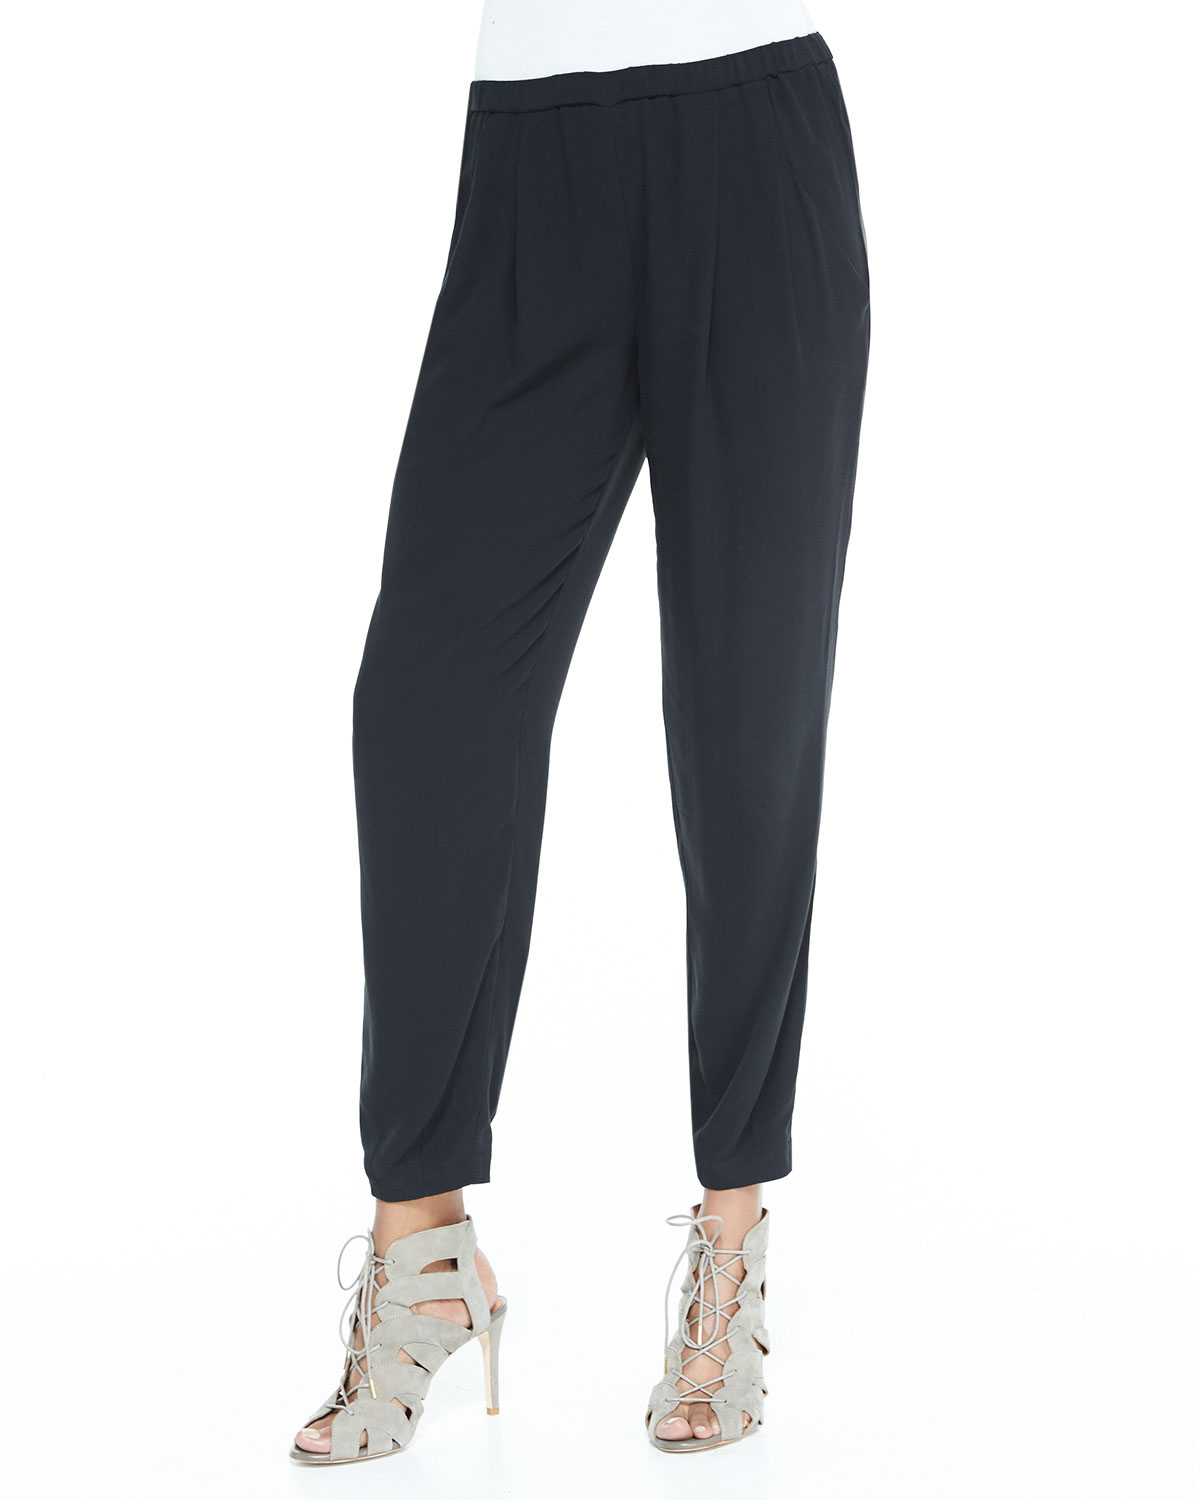 Eileen fisher Slouchy Silk Ankle Pants in Black | Lyst